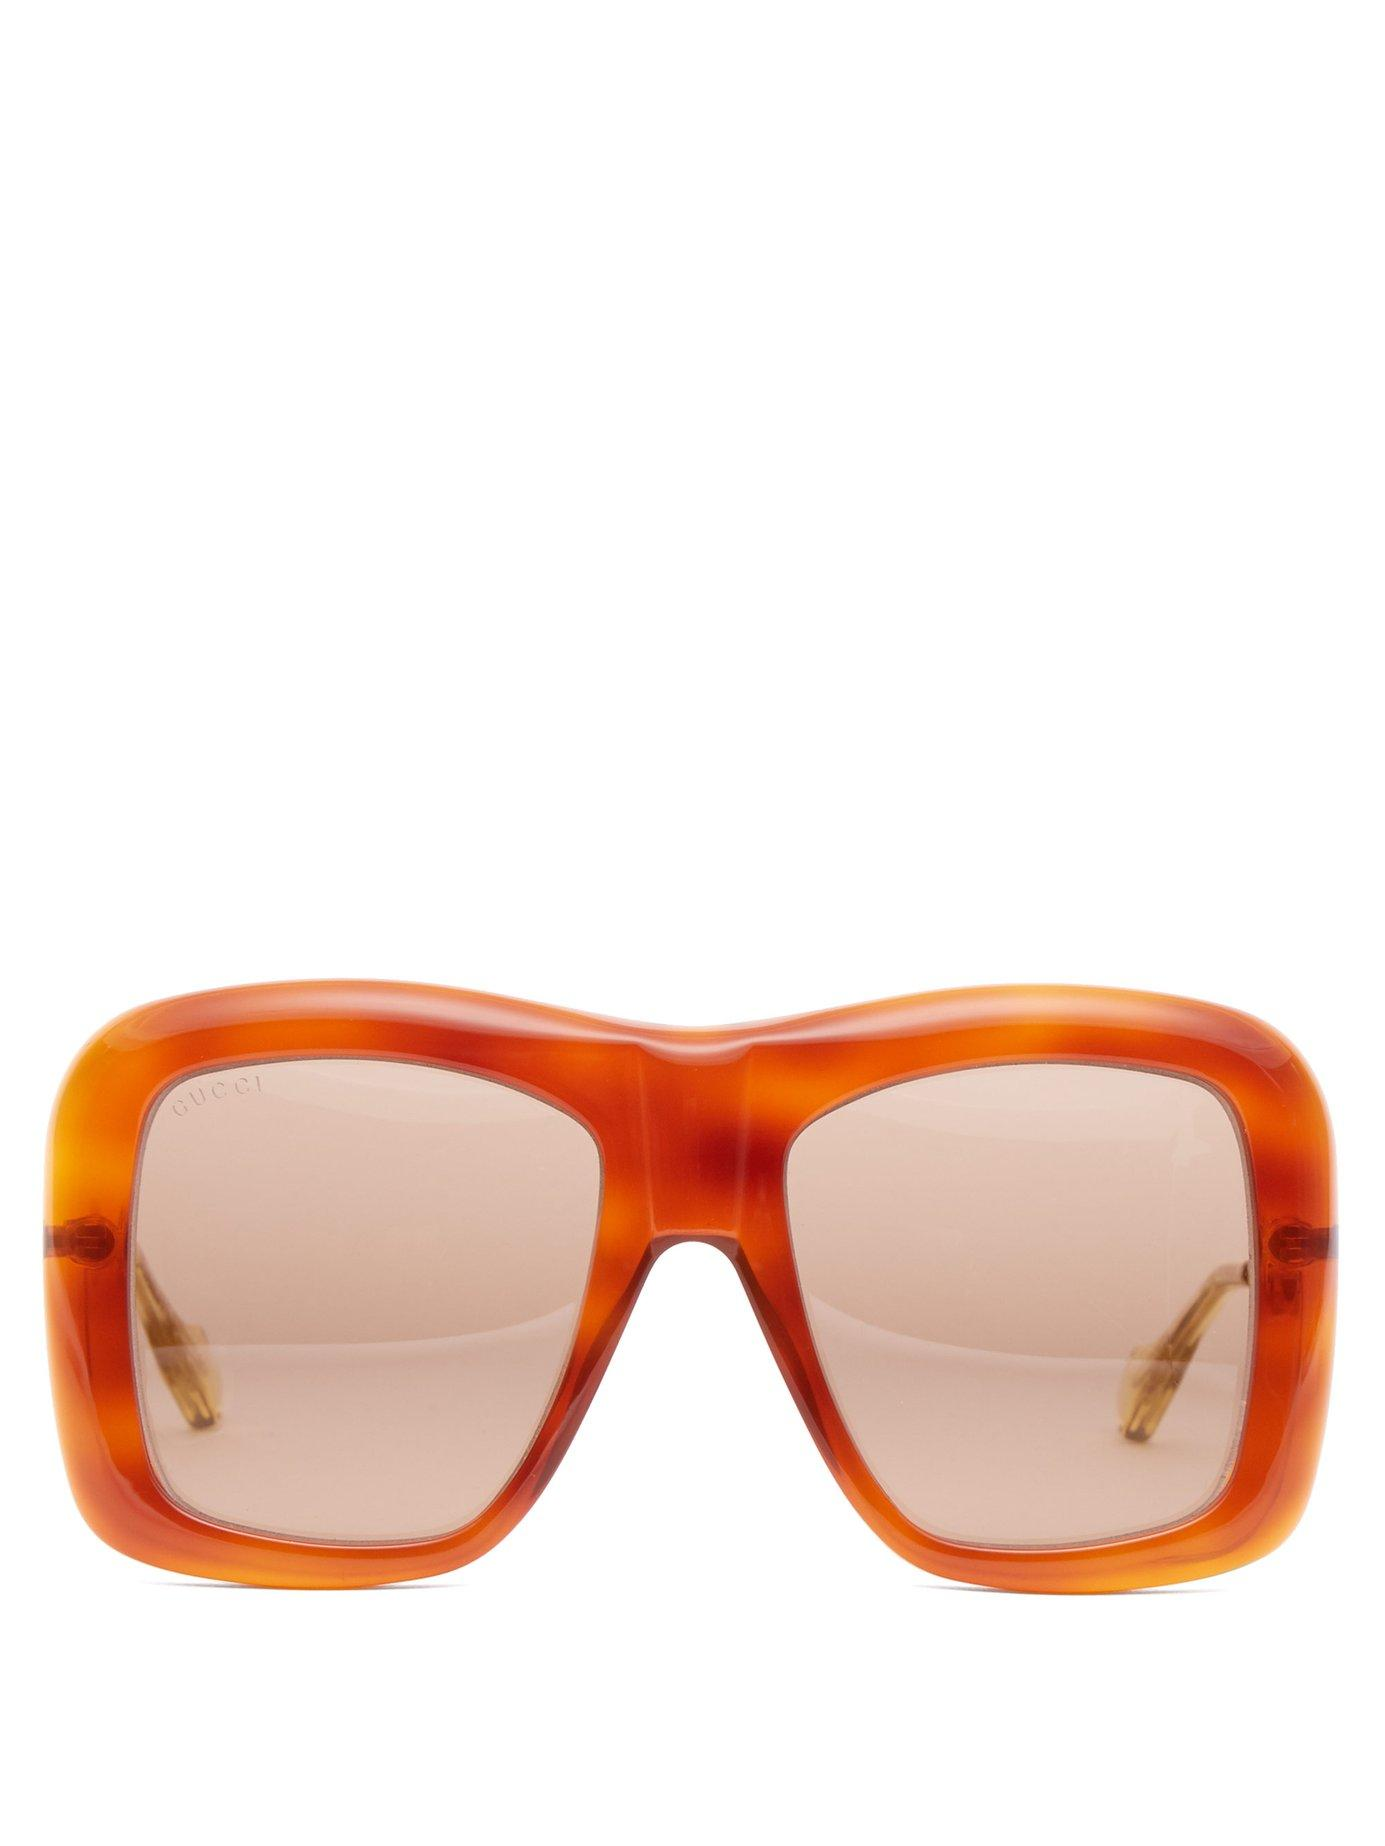 c177c292d97 Gucci. Women s Square Frame Acetate And Metal Sunglasses